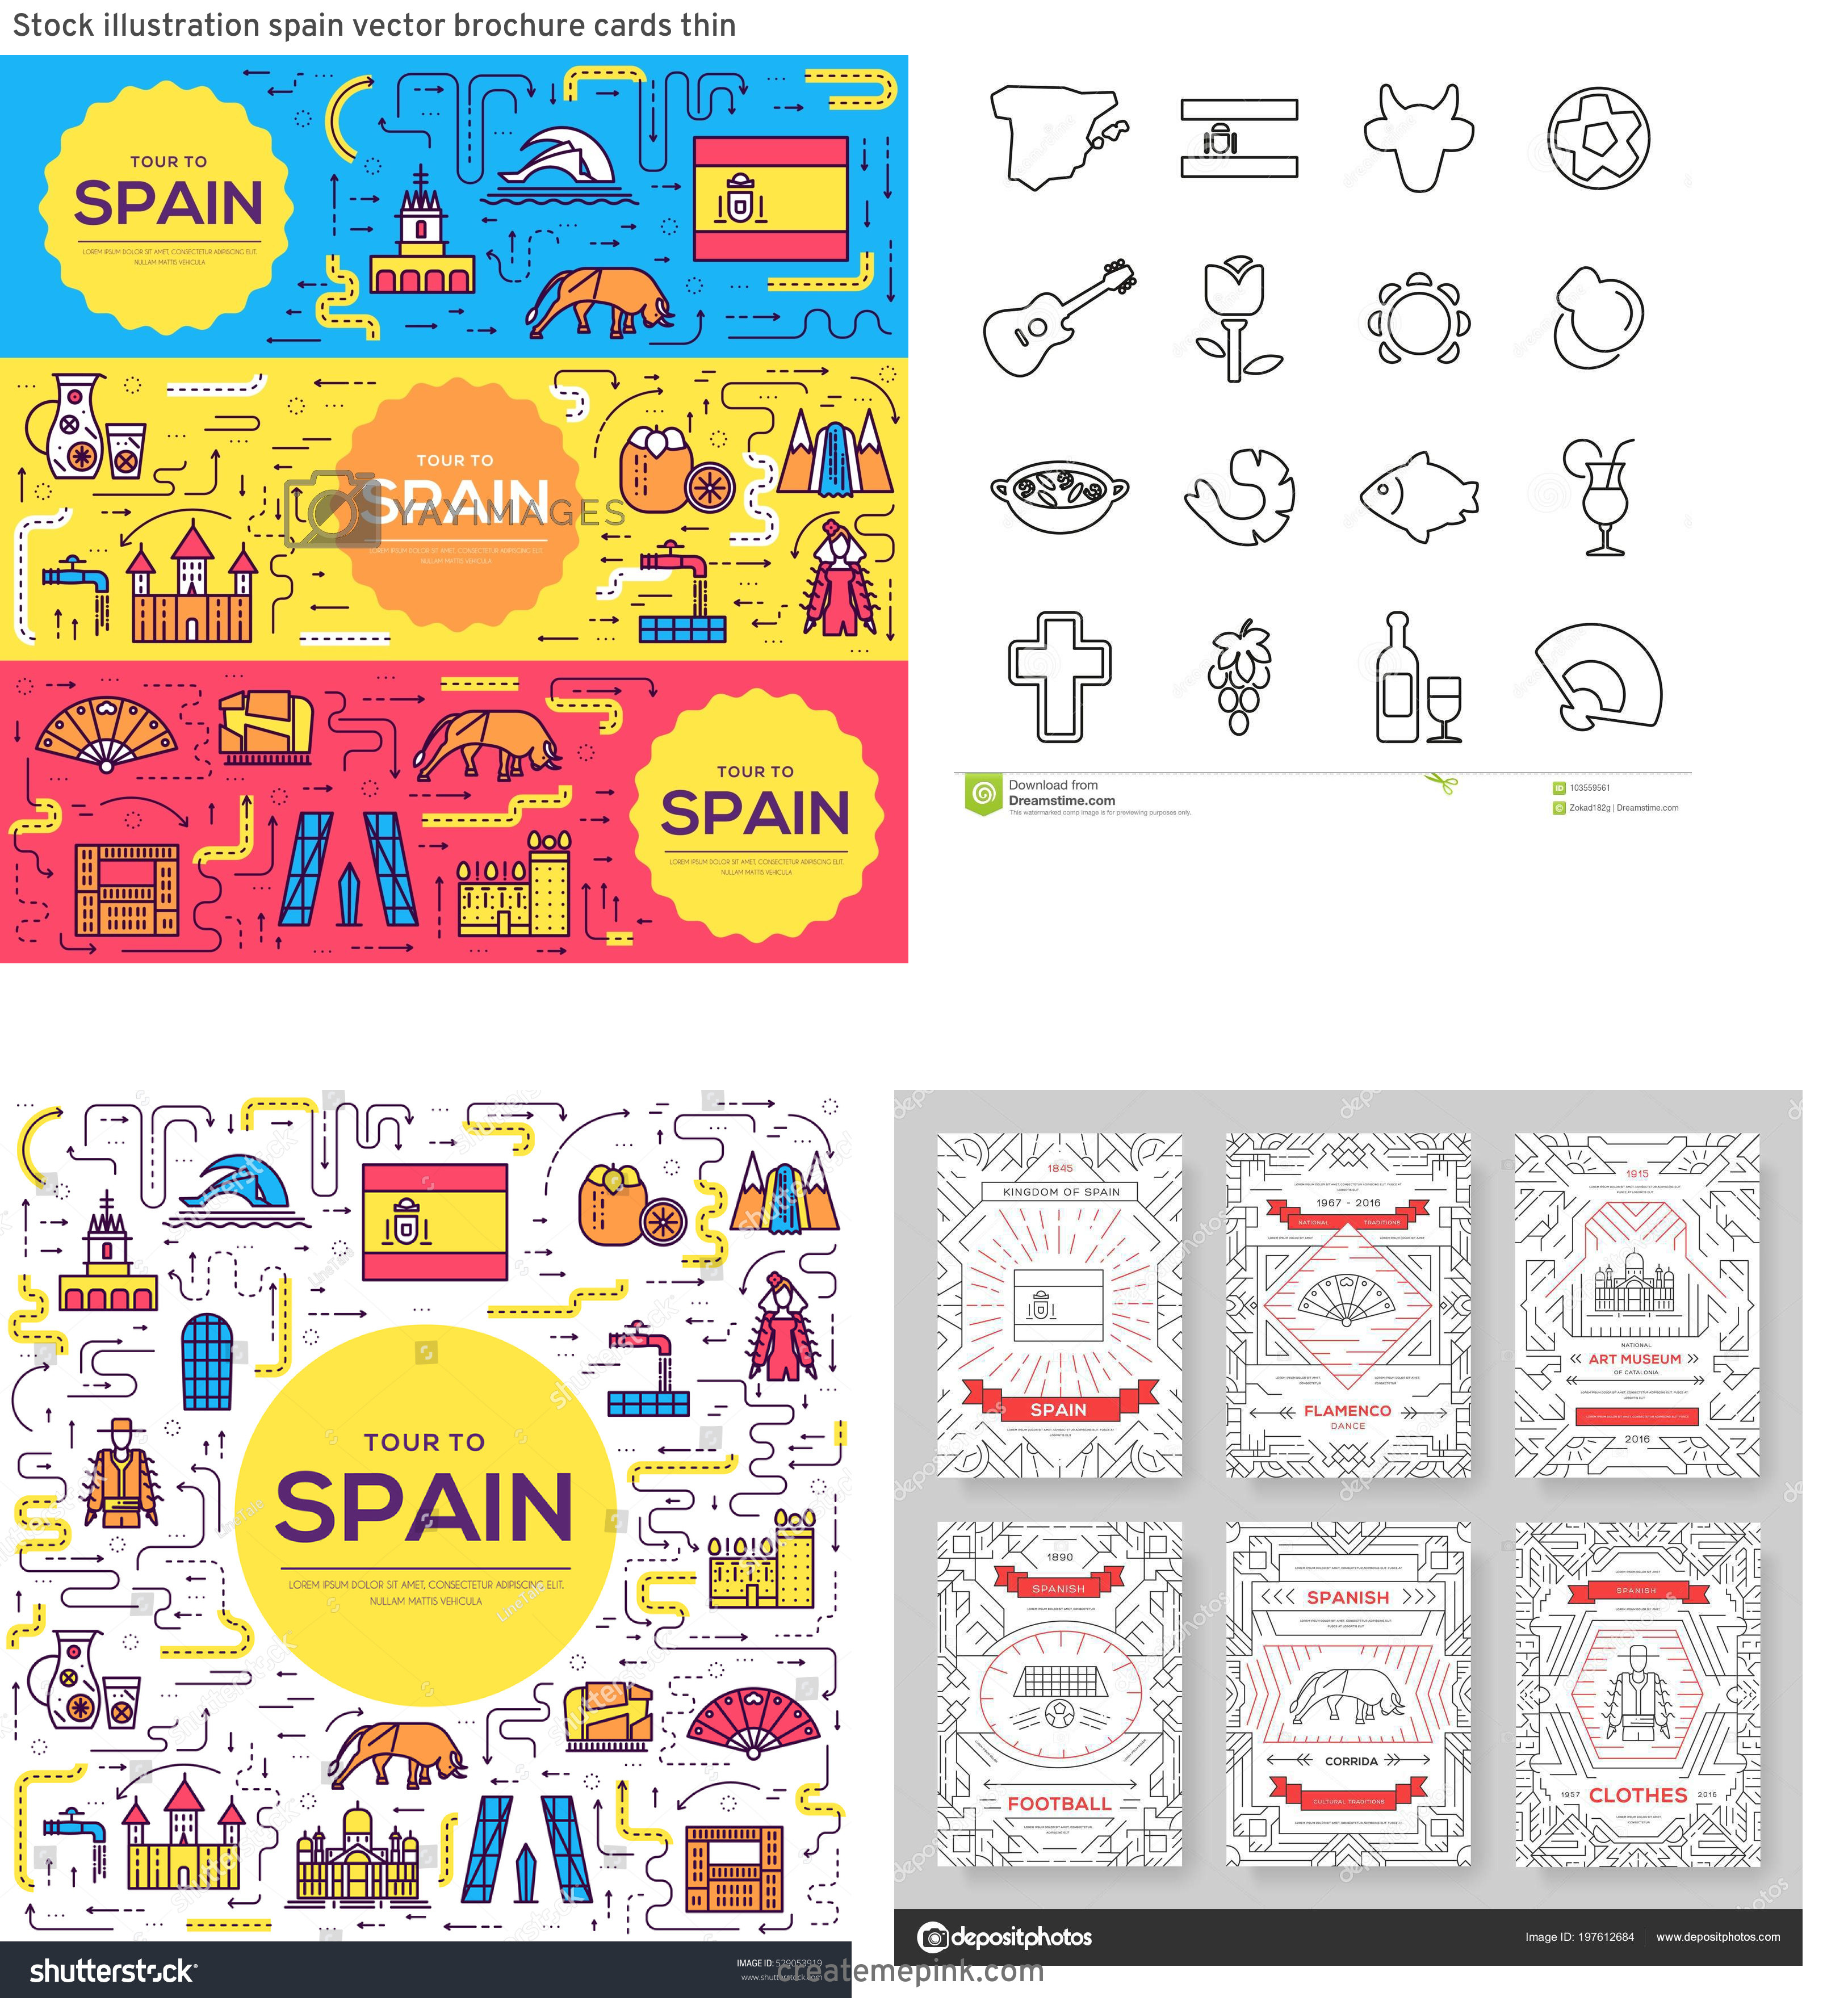 Spain Country Vectors Line: Stock Illustration Spain Vector Brochure Cards Thin